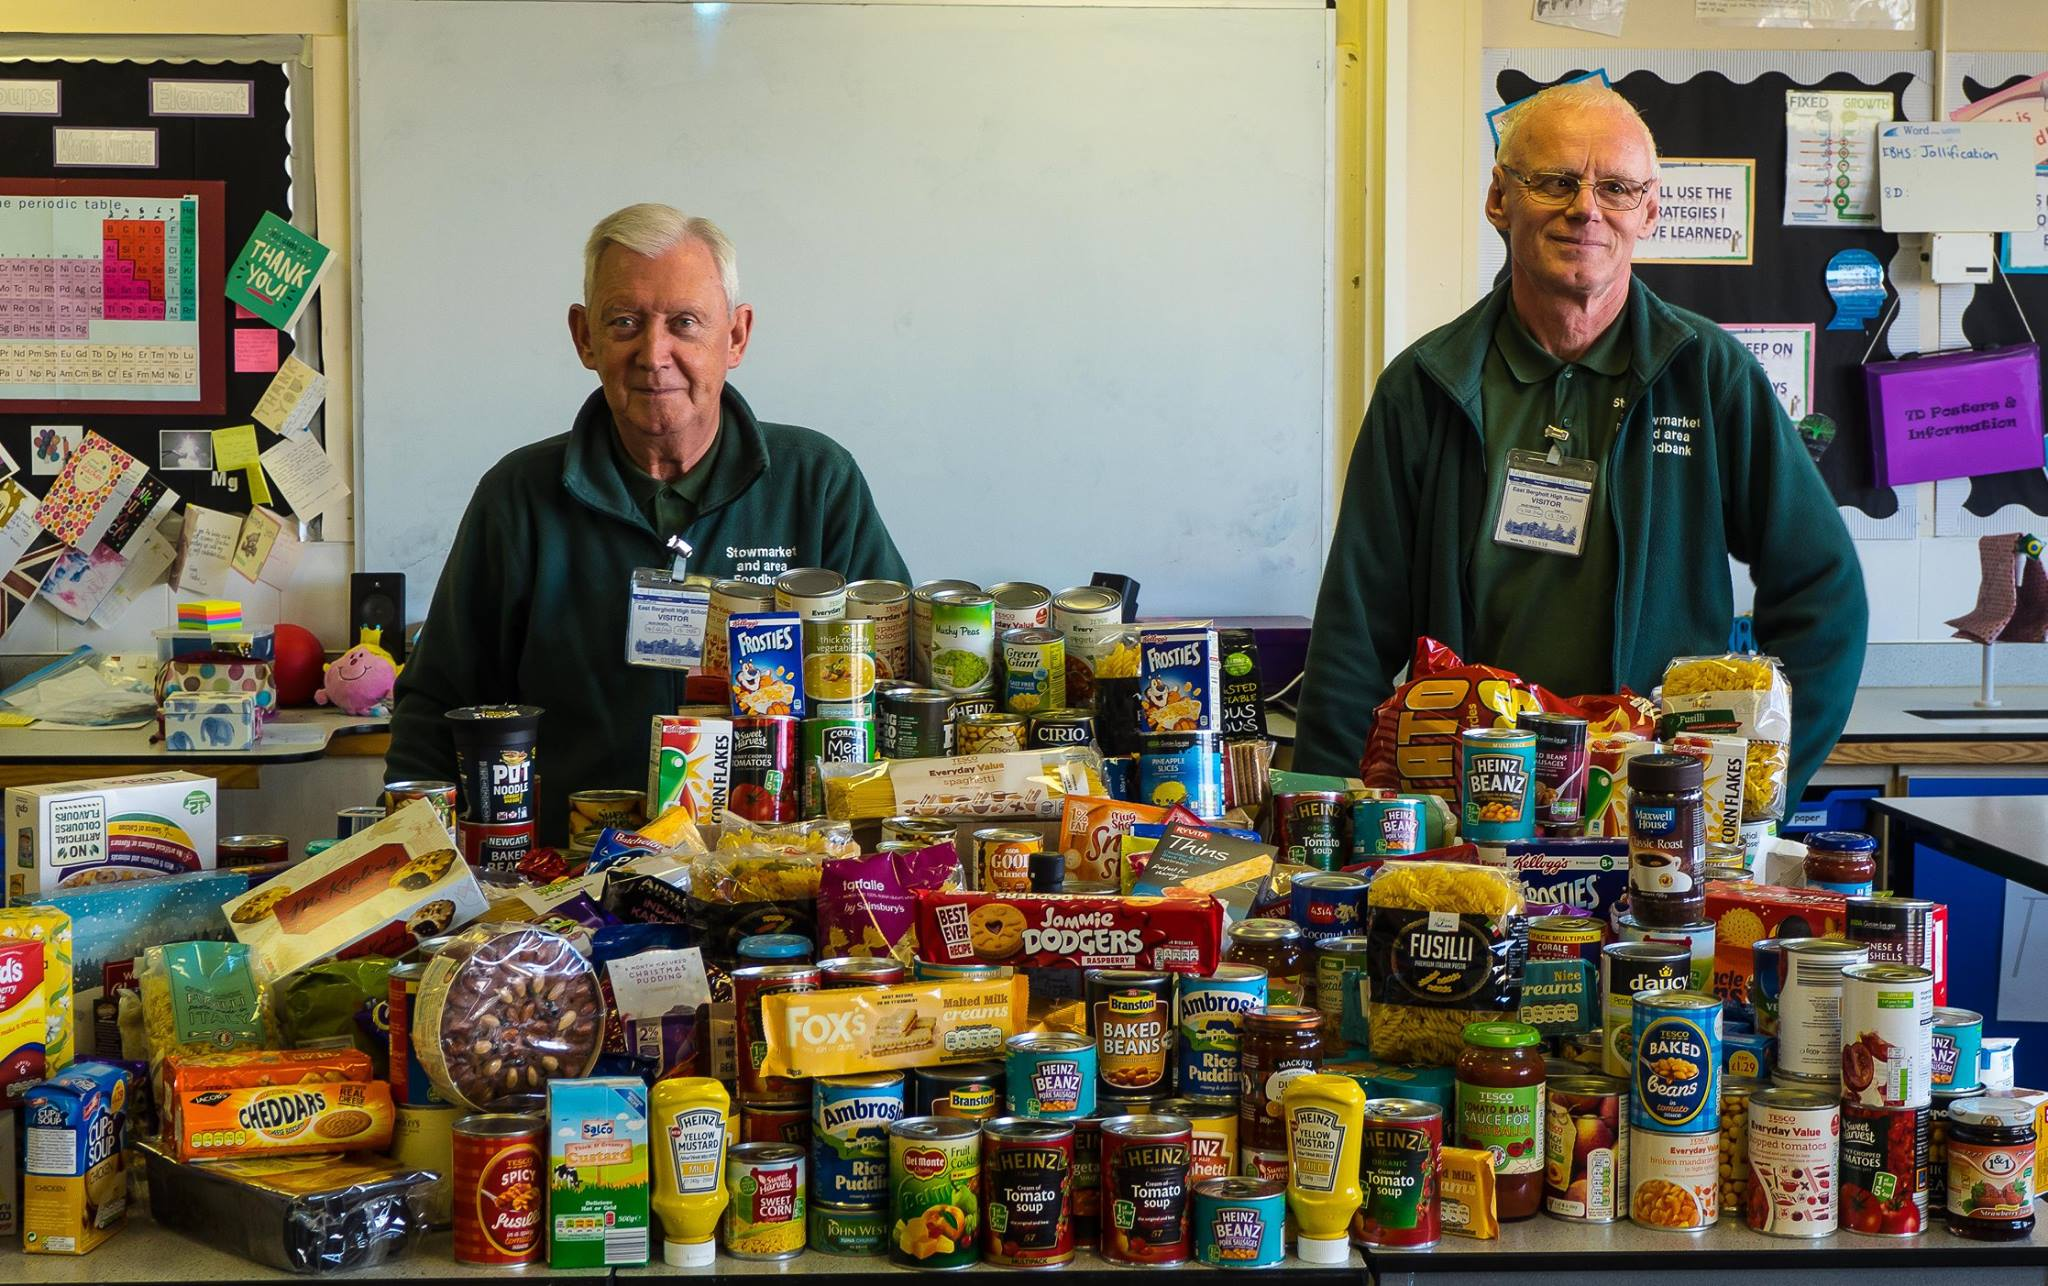 Stowmarket & area foodbank by New Life (Suffolk) fundraising photo 2